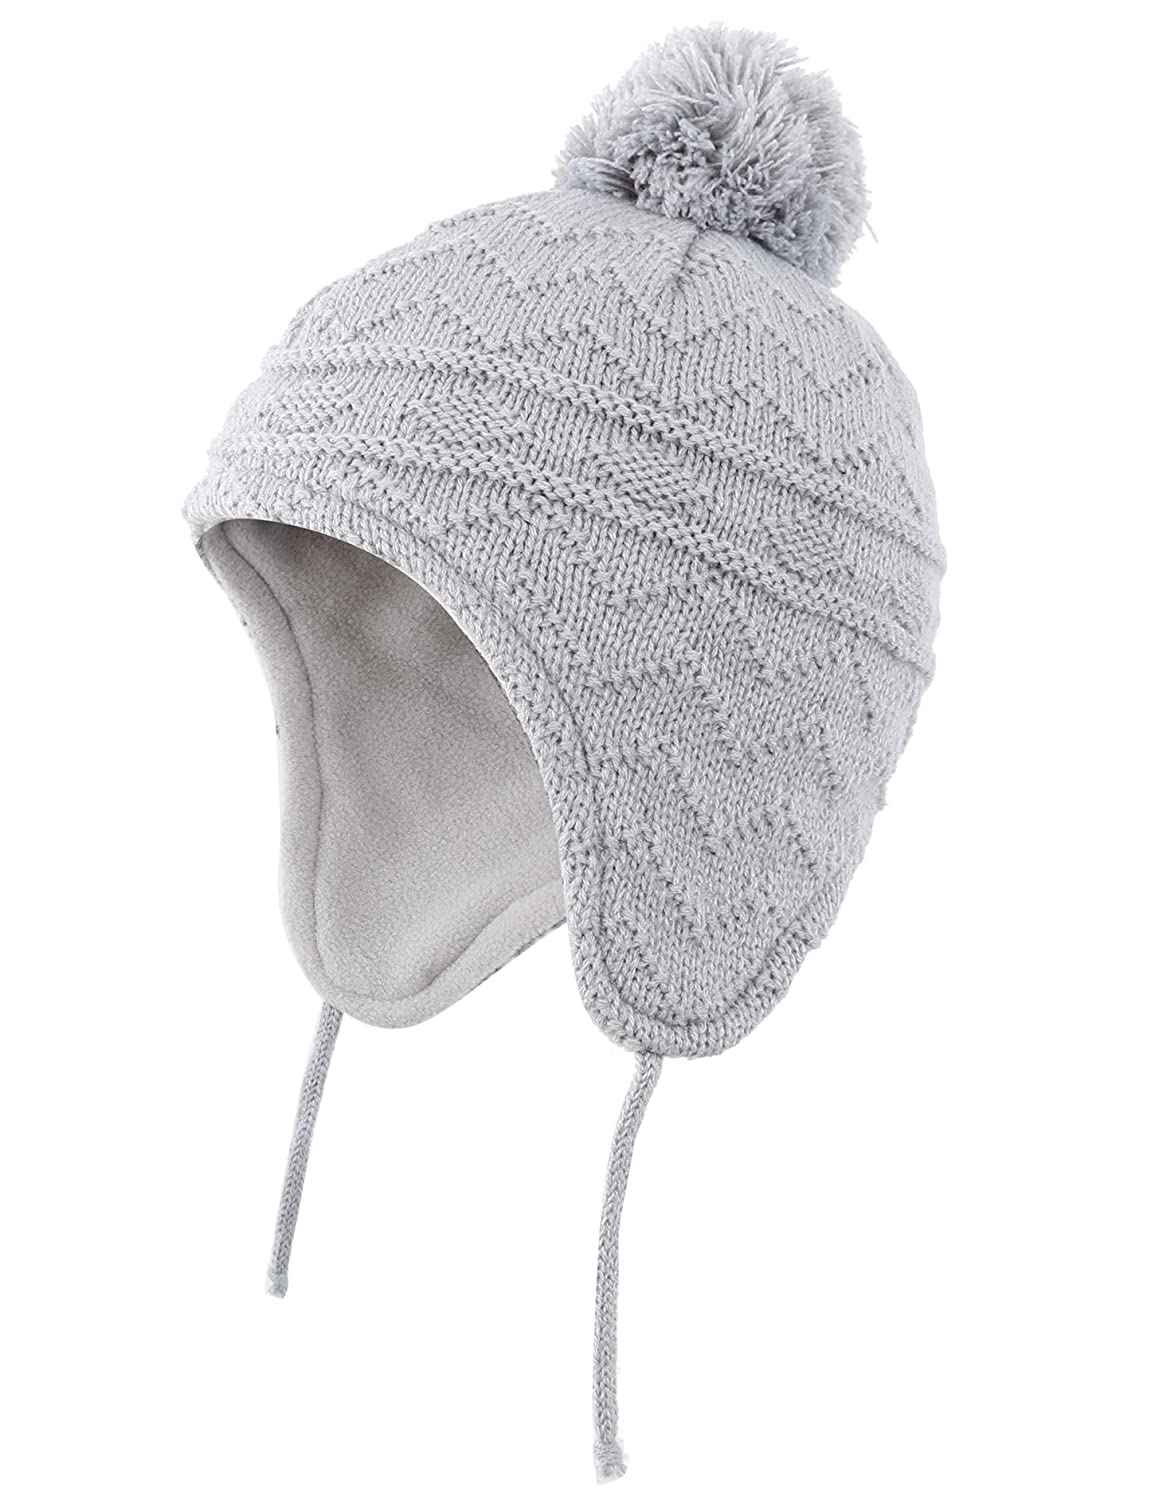 e969fa71241 Amazon.com  Connectyle Toddler Boys Girls Fleece Lined Knit Kids Hat with  Earflap Winter Hat  Clothing